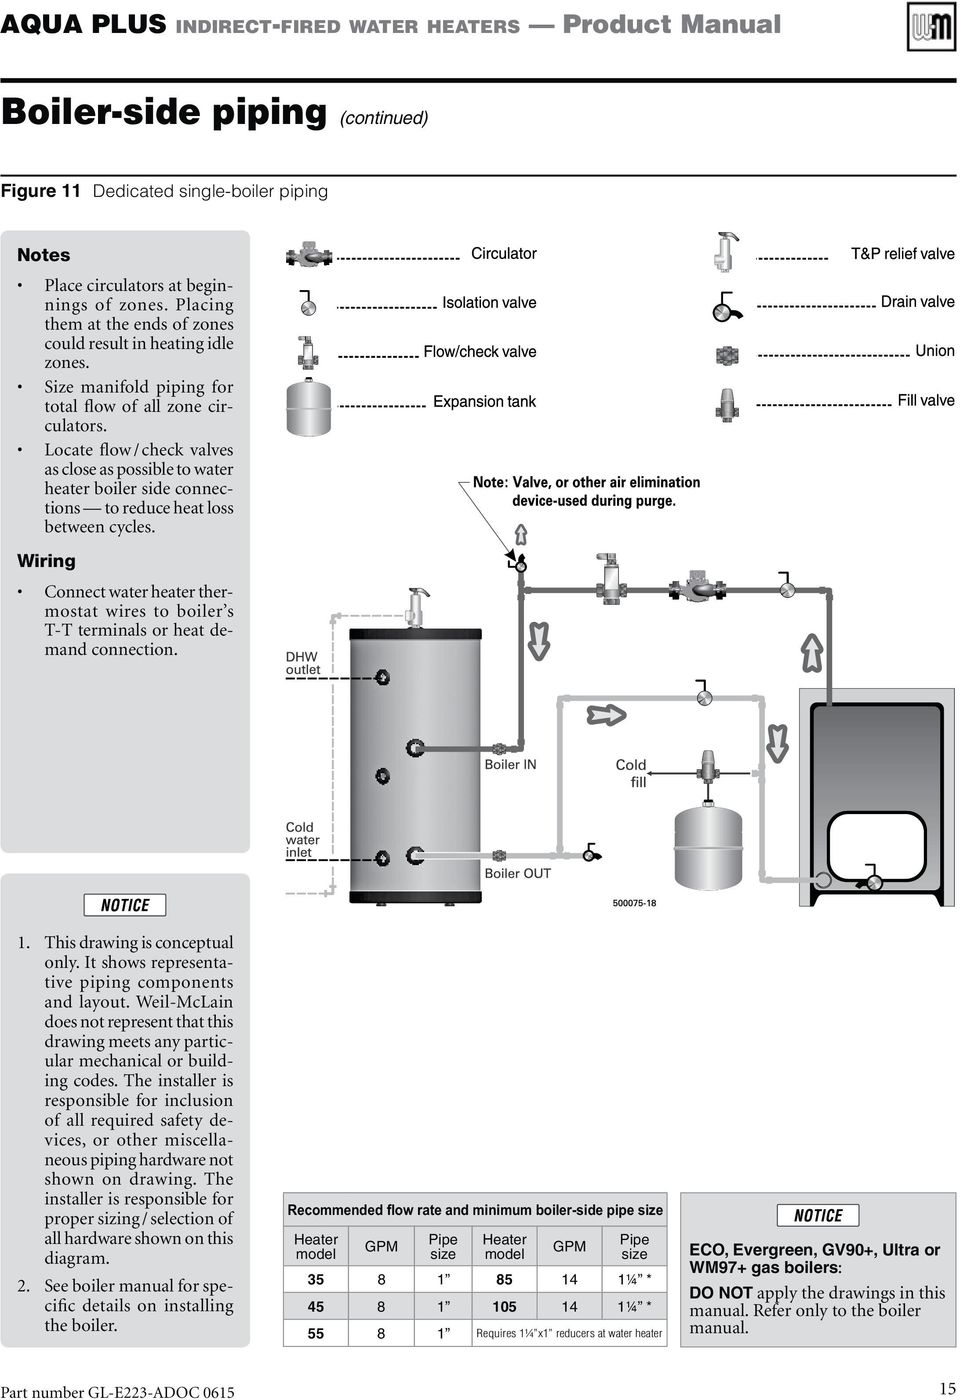 Wiring Connect water heater thermostat wires to boiler s T-T terminals or  heat demand connection.